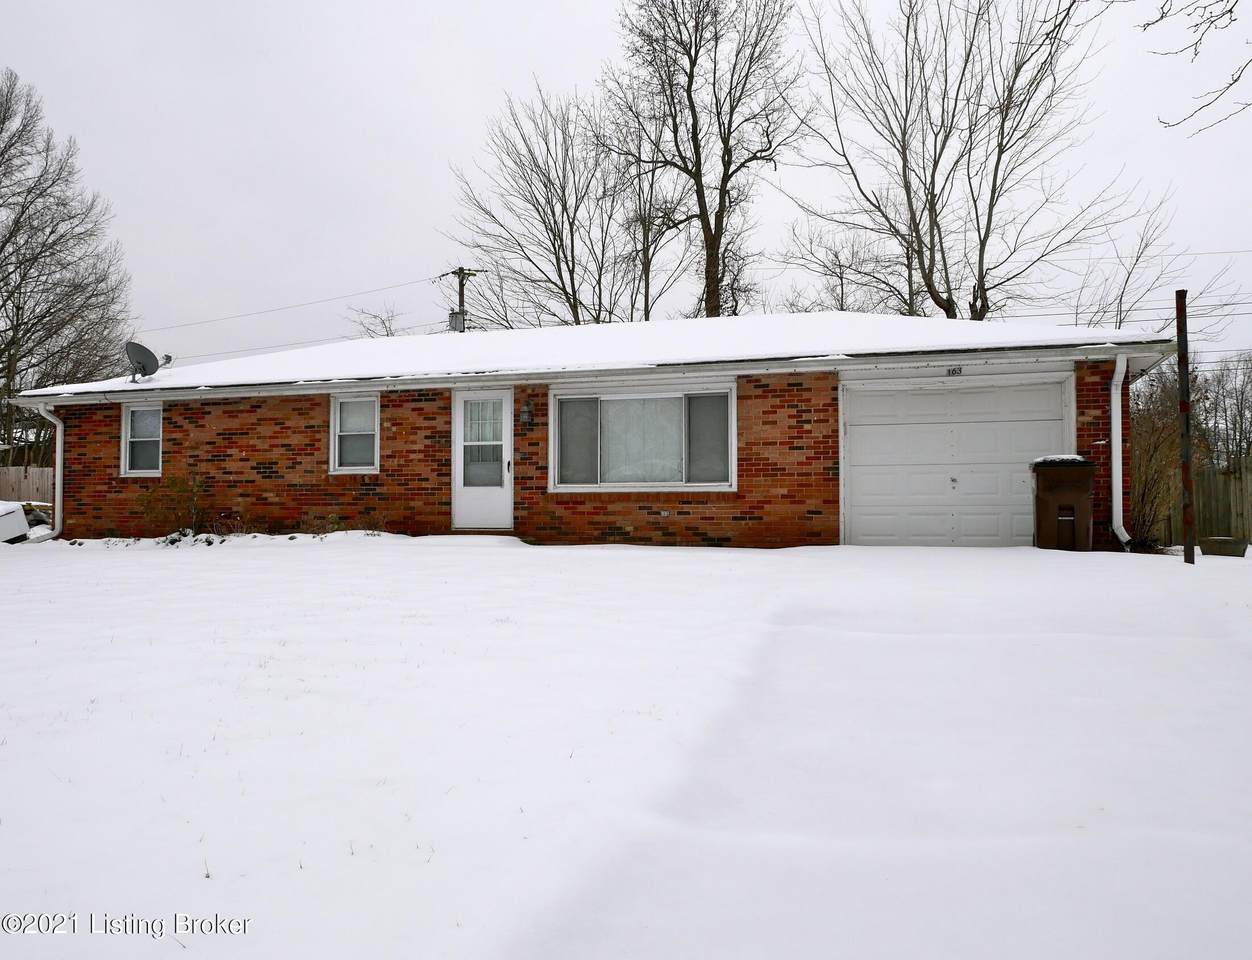 163 Sycamore Dr - Photo 1